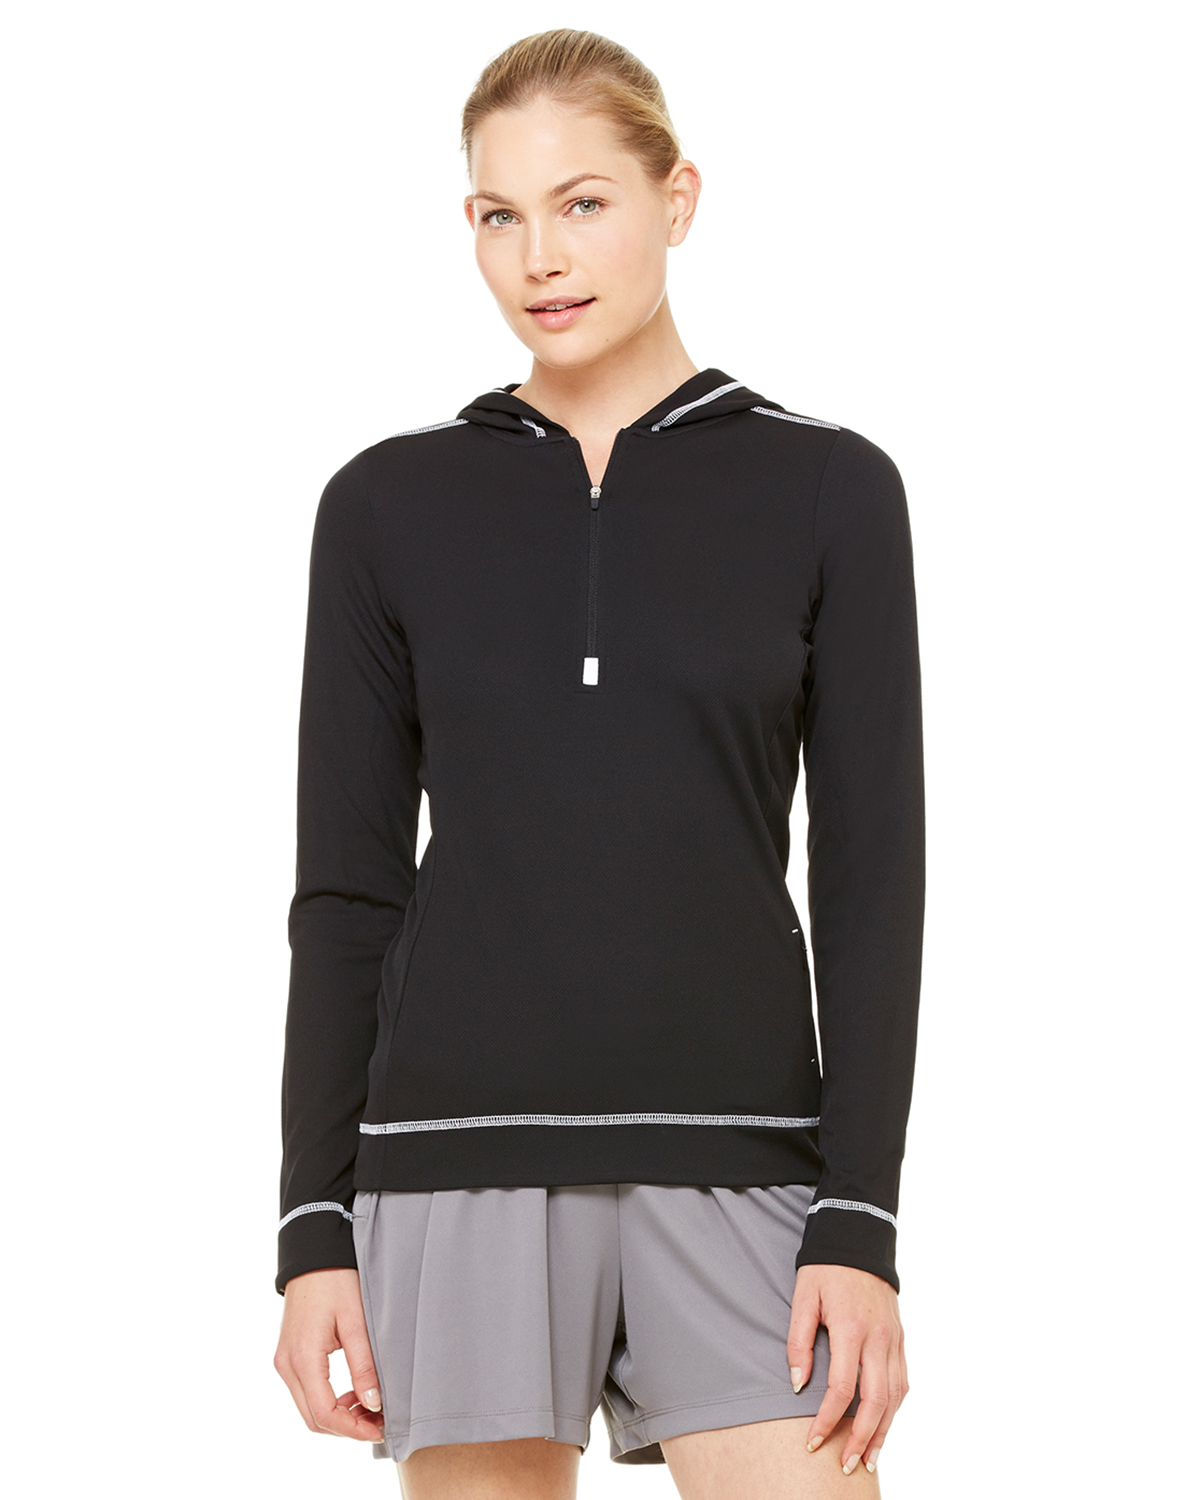 Alo W3002 Ladies' Long Sleeve 1/2 Zip Hooded Pullover